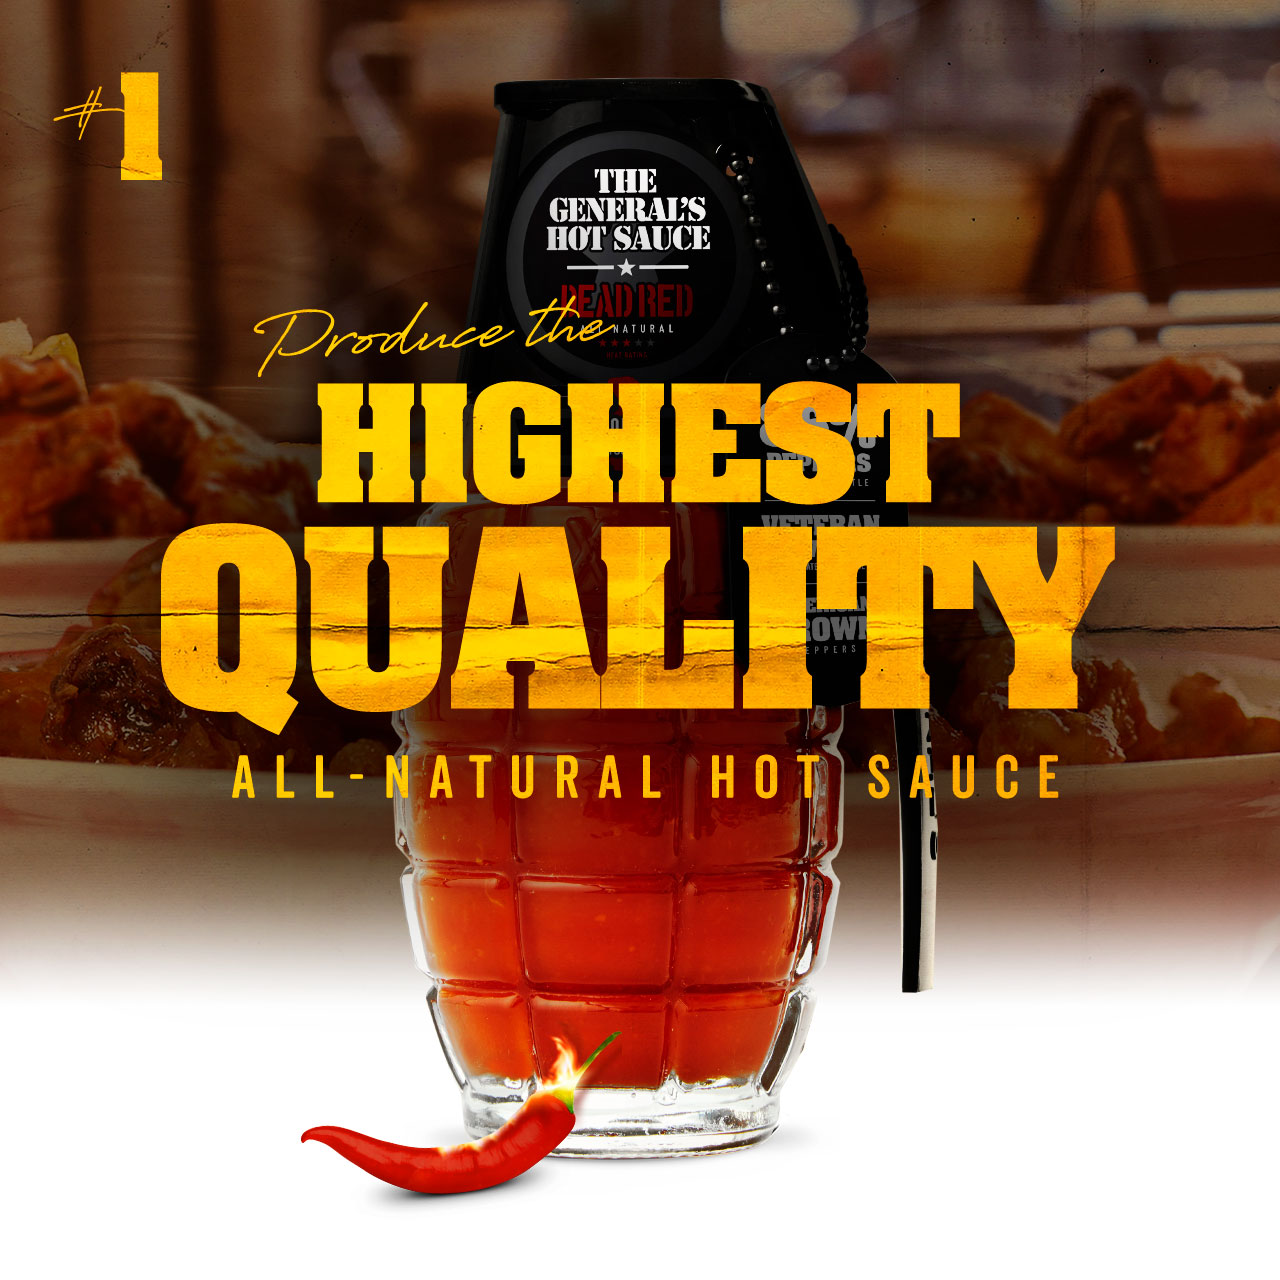 Produce the highest quality American-grown, all-natural hot sauce possible.